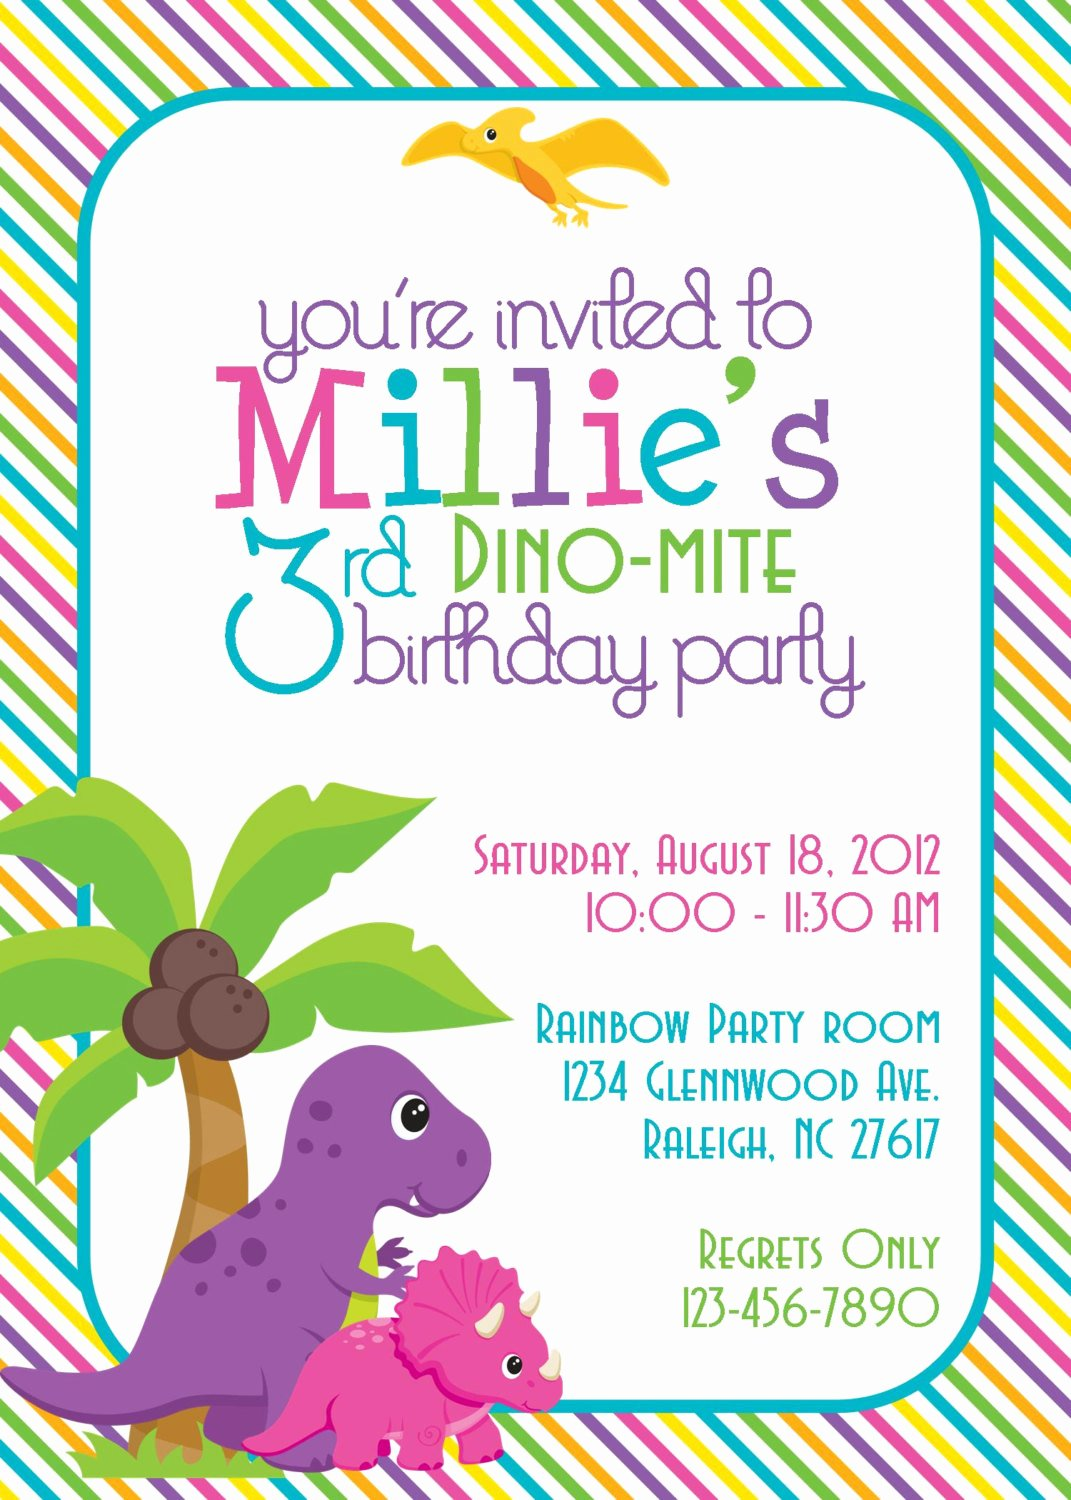 Dinosaur Birthday Invitations Free Inspirational Dino Mite Dinosaur Birthday Party 5x7 Invitation by Partysoperfect